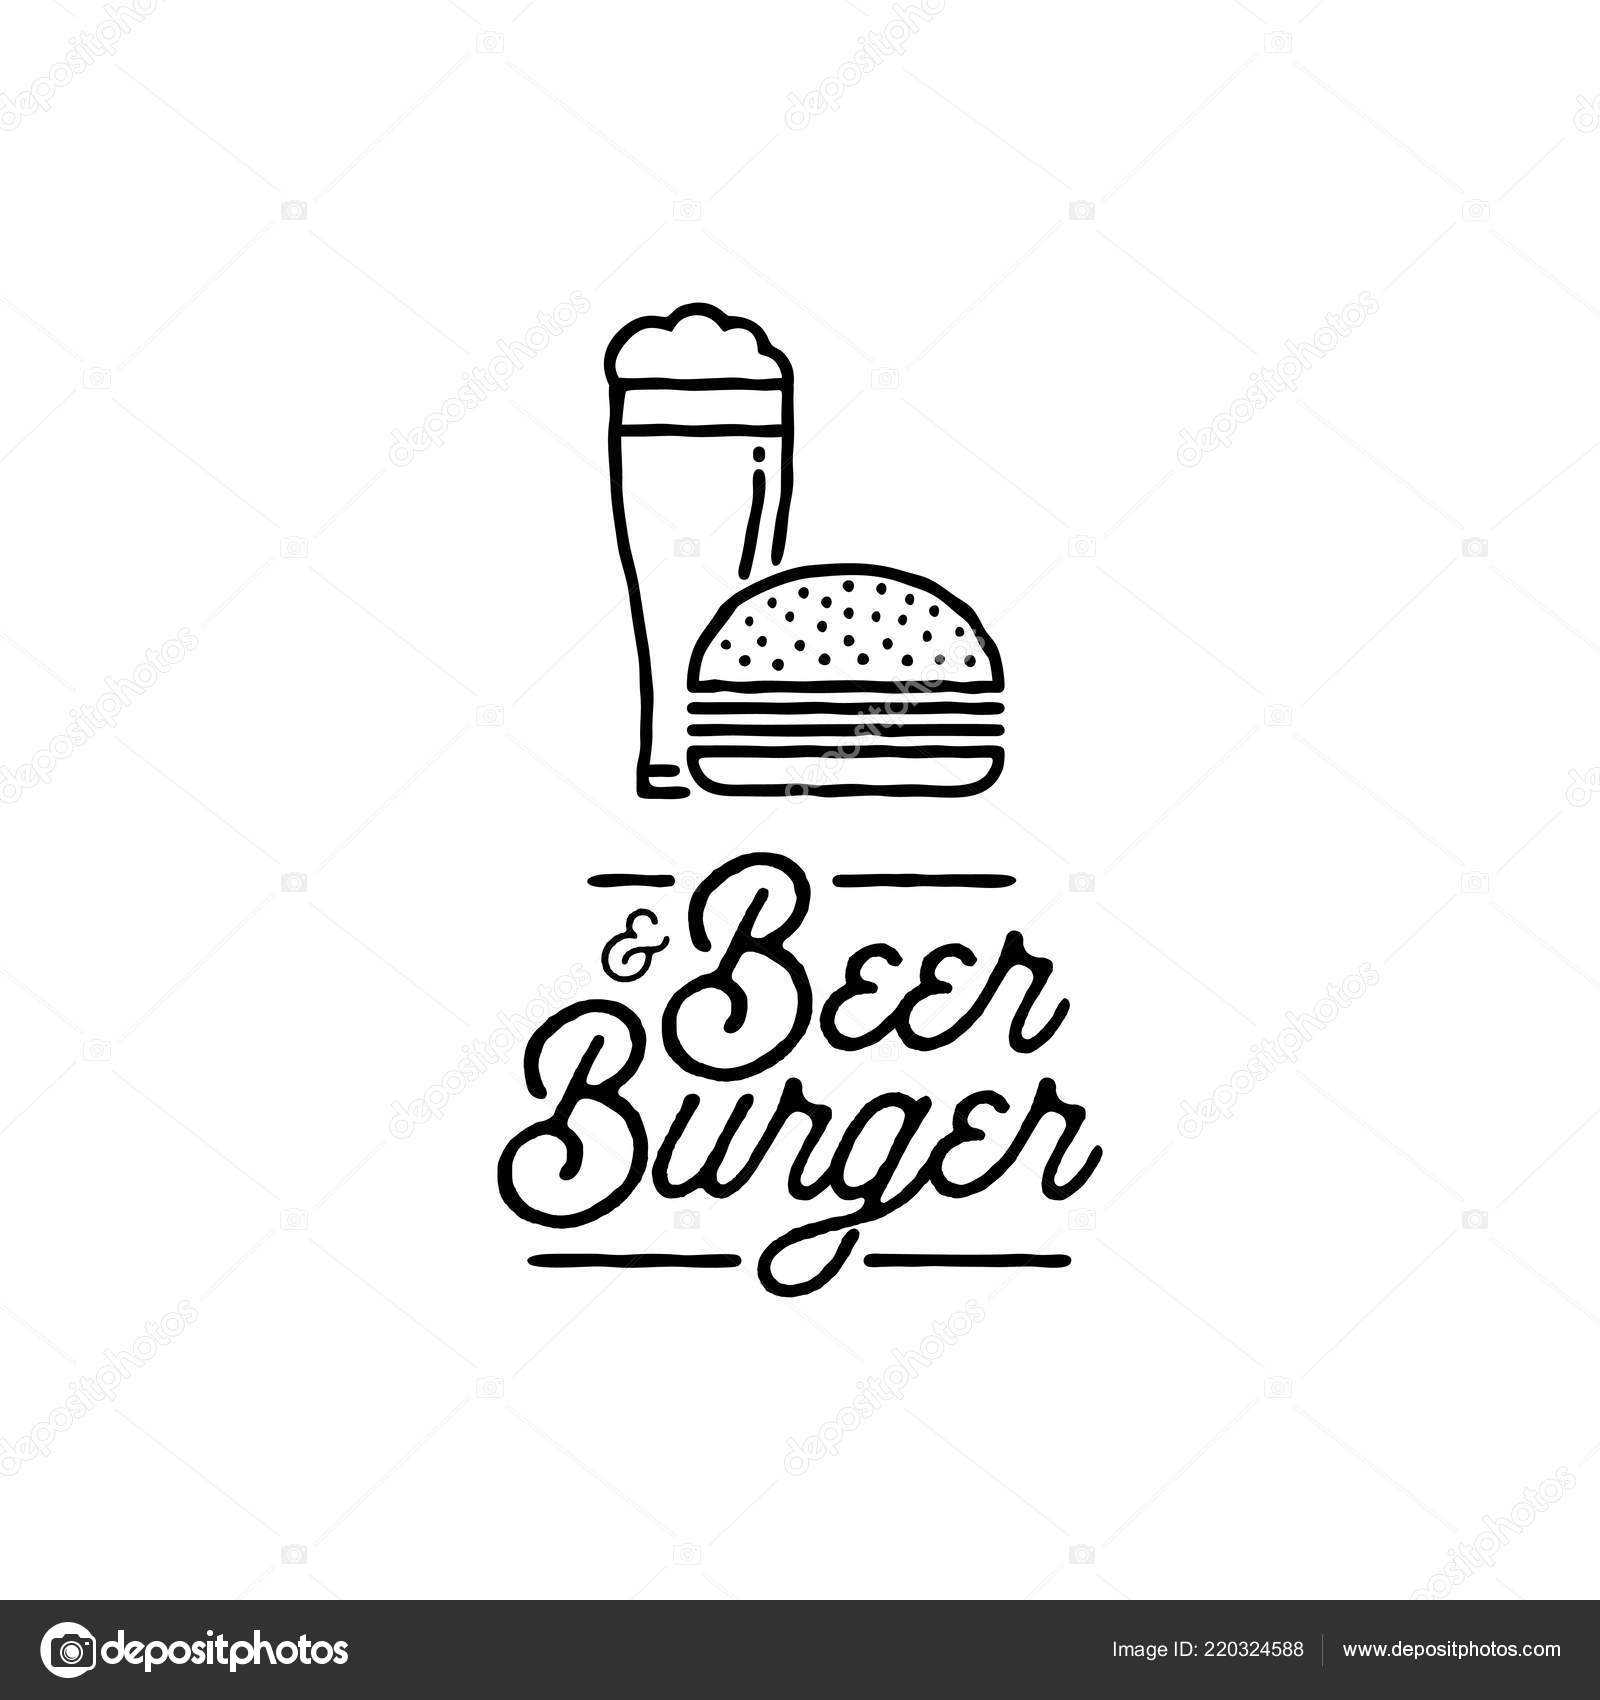 Beer And Burger Outline Black B Vector Illustration Vector Image By C Tunejadez Vector Stock 220324588